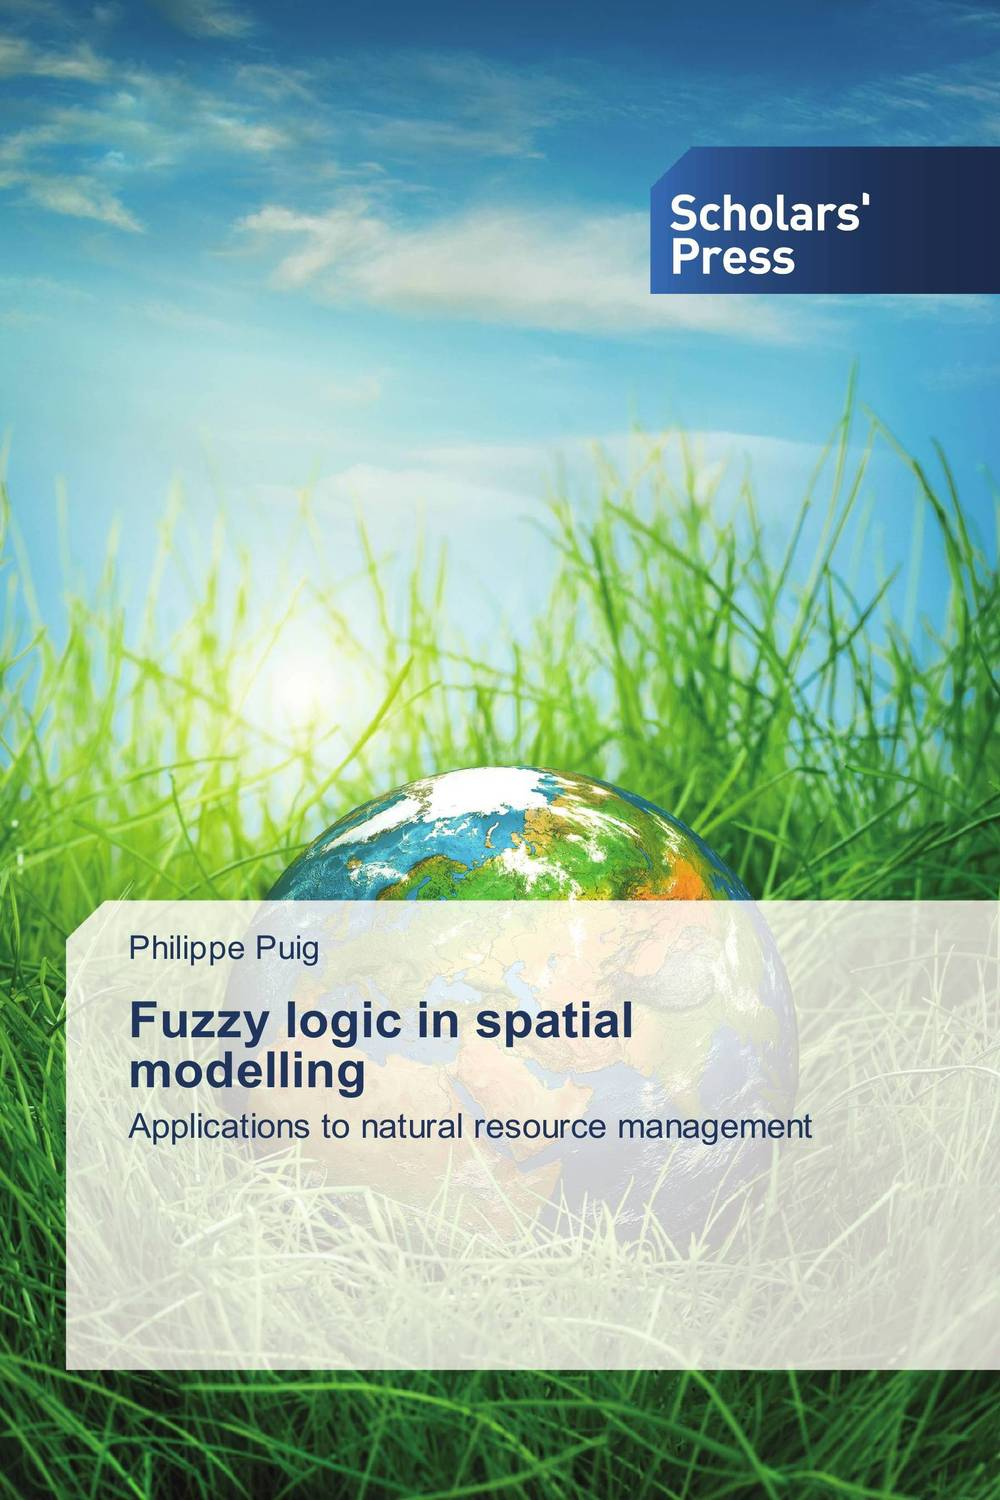 Fuzzy logic in spatial modelling fuzzy logic based information retrieval system